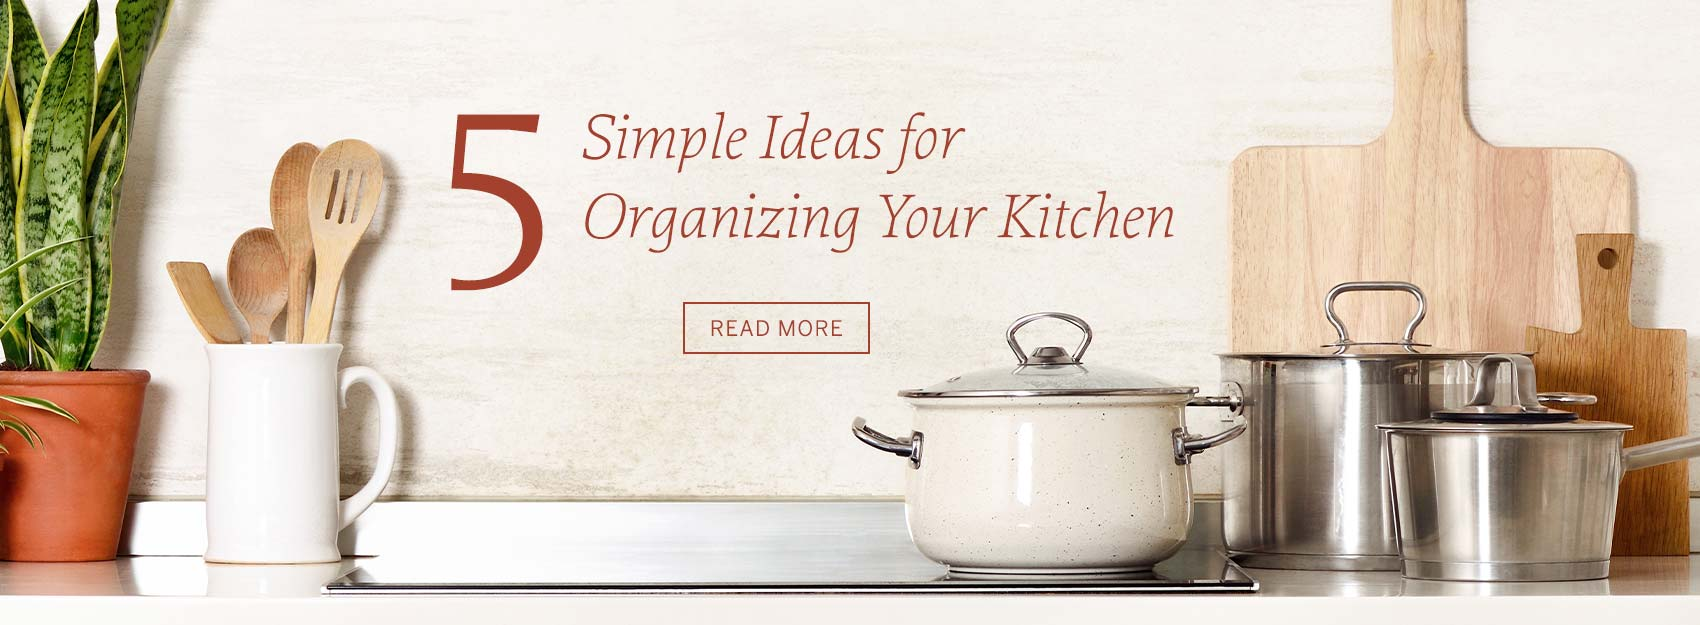 5 Simple Ideas for Organizing Your Kitchen | GreyDock Blog